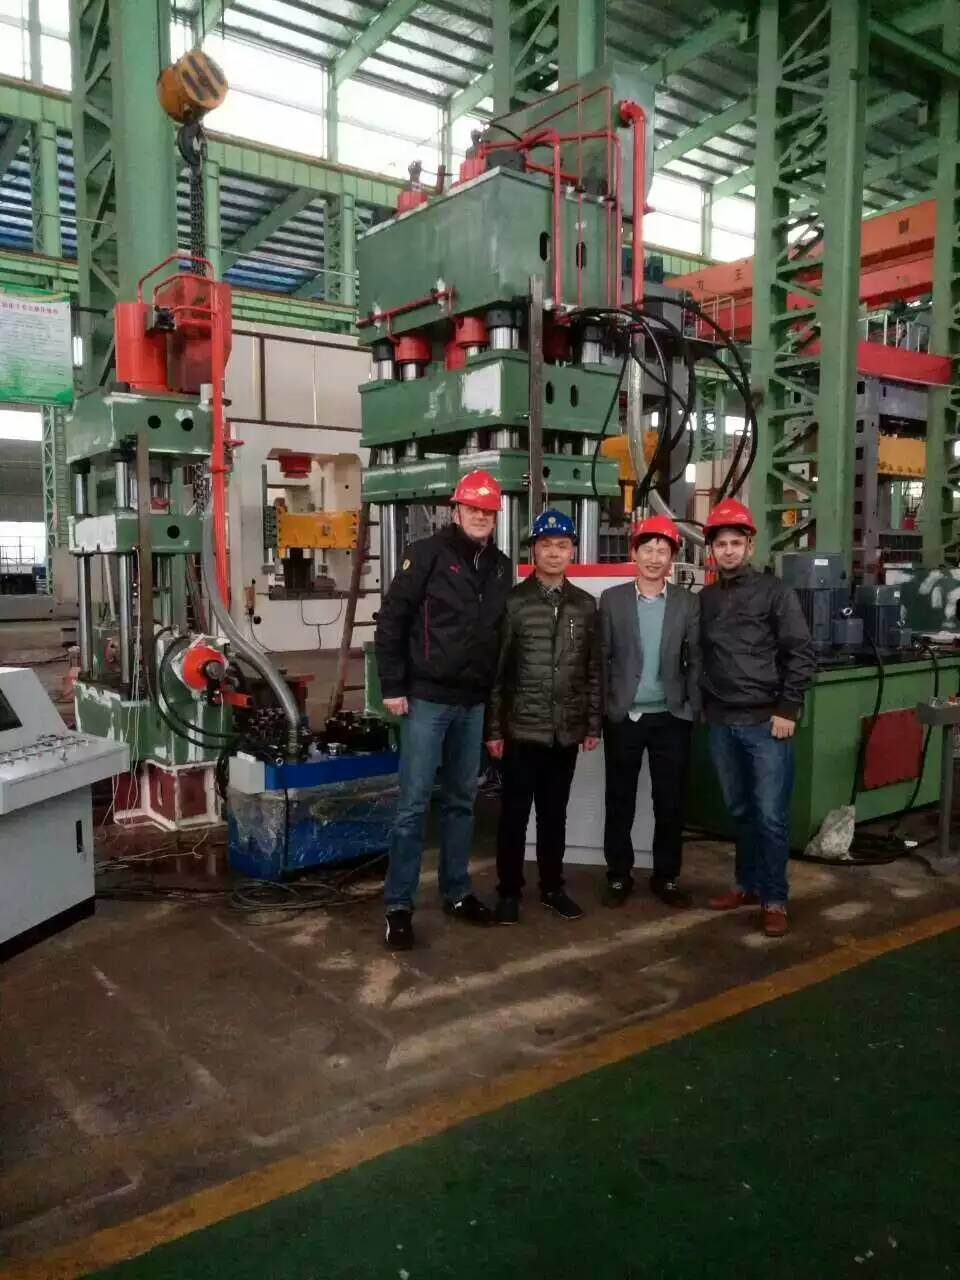 The Polish customer acceptance of the hydraulic press